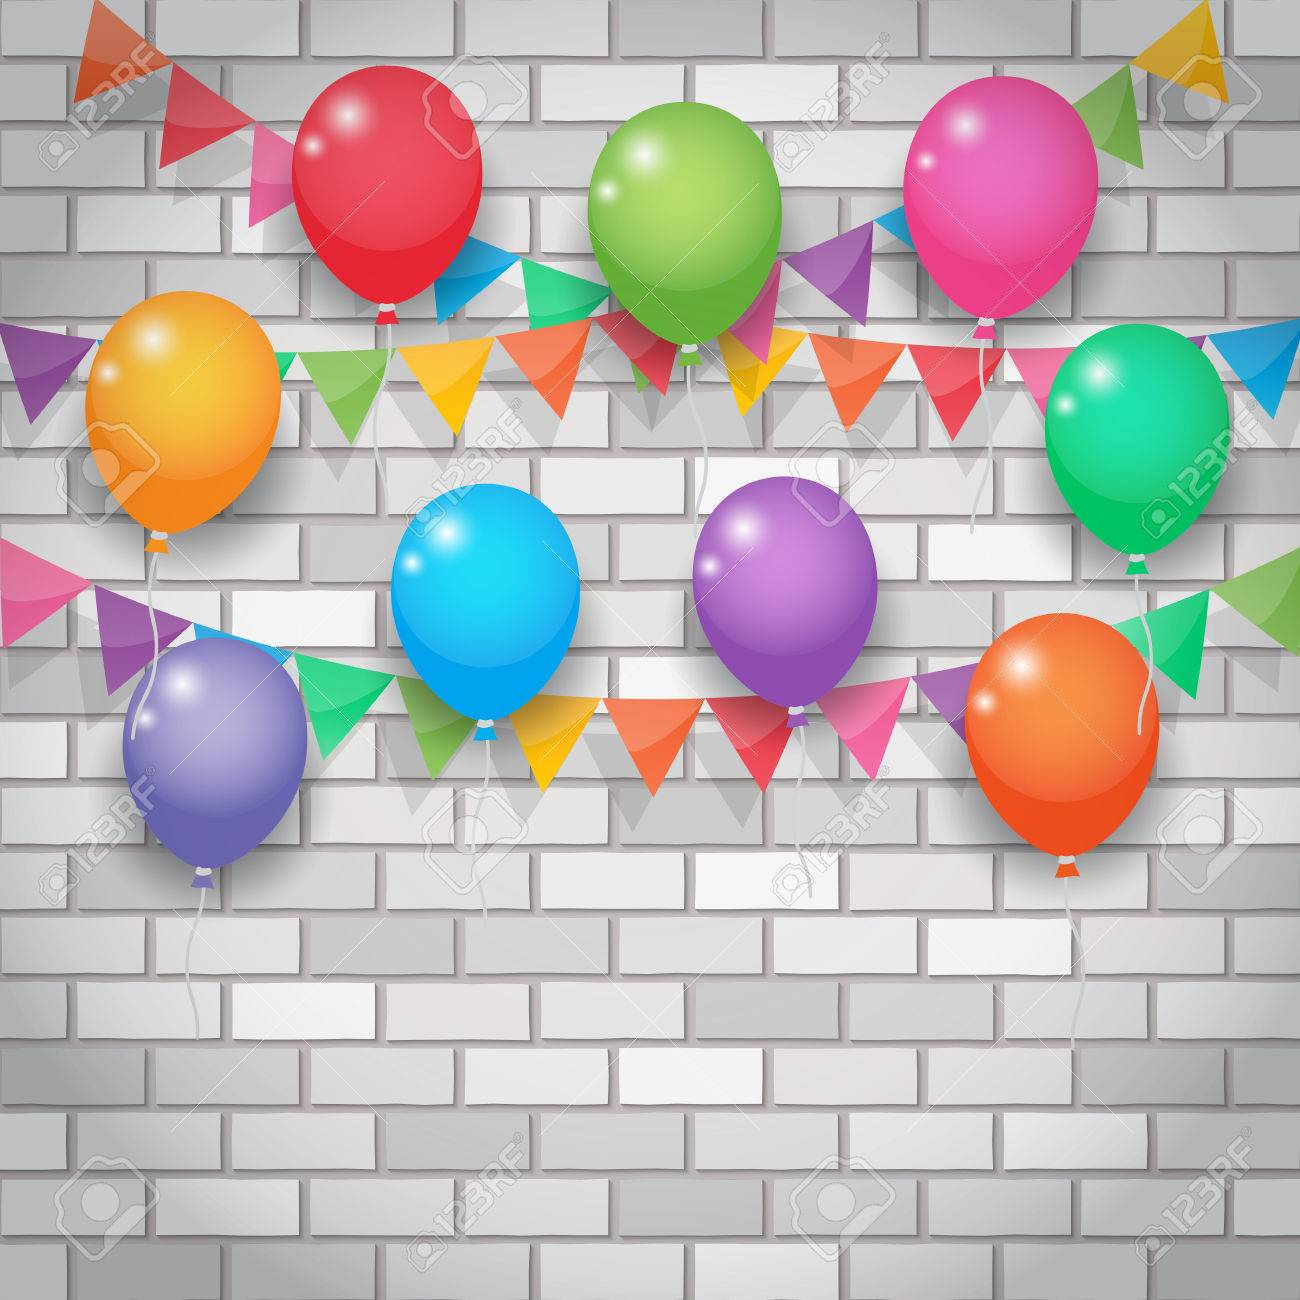 Wall decoration party choice image home wall decoration ideas wall decoration party image collections home wall decoration ideas balloon and bunting garland decoration party flags amipublicfo Image collections